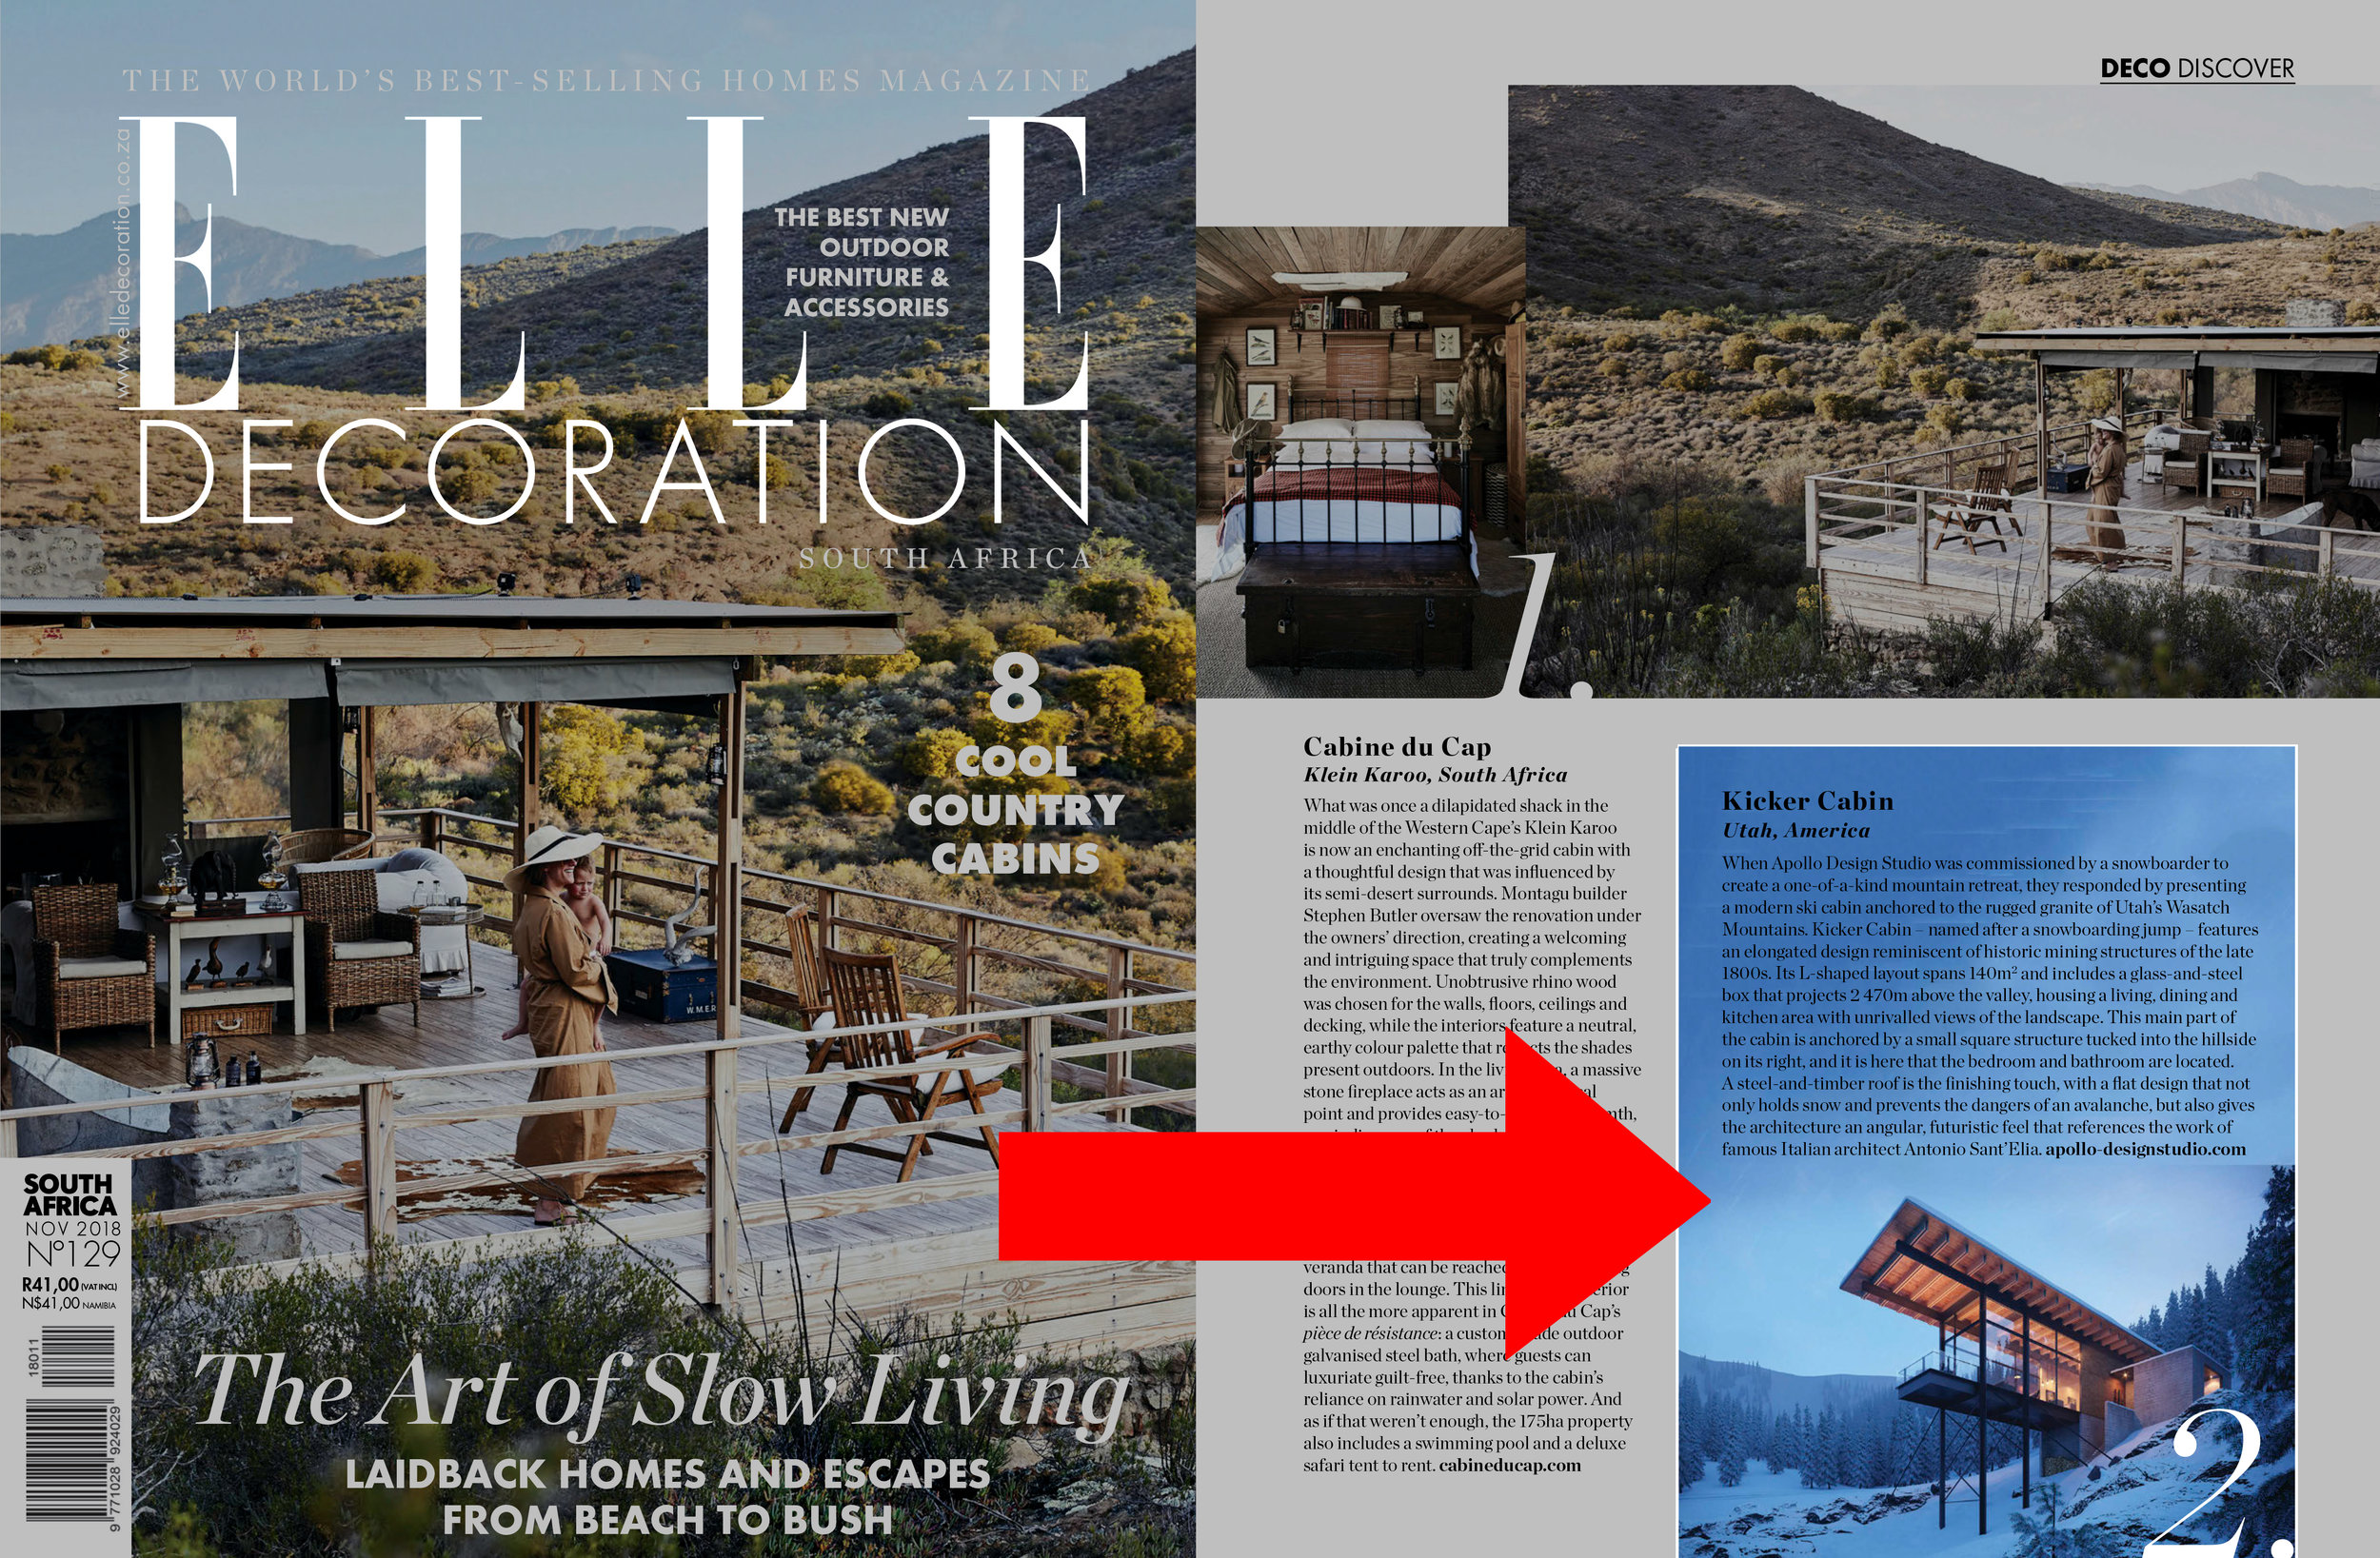 Elle Decor architectural article